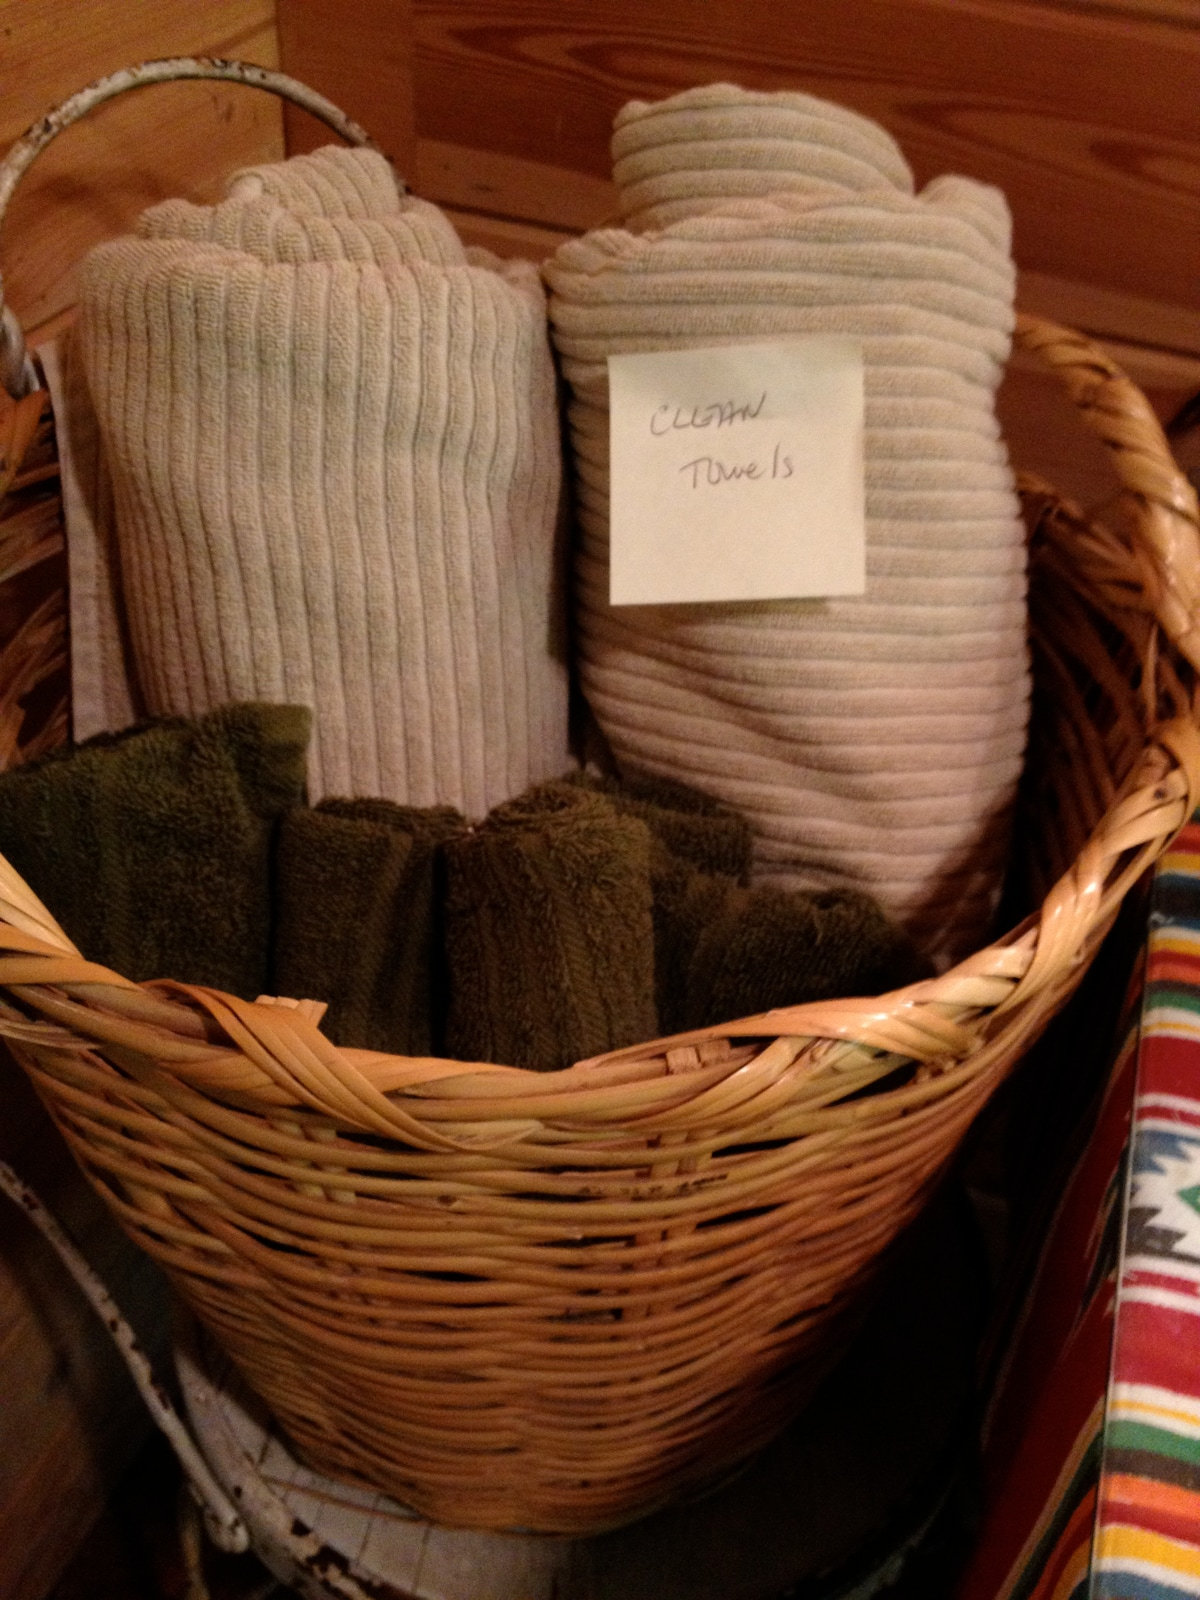 fresh towels for you